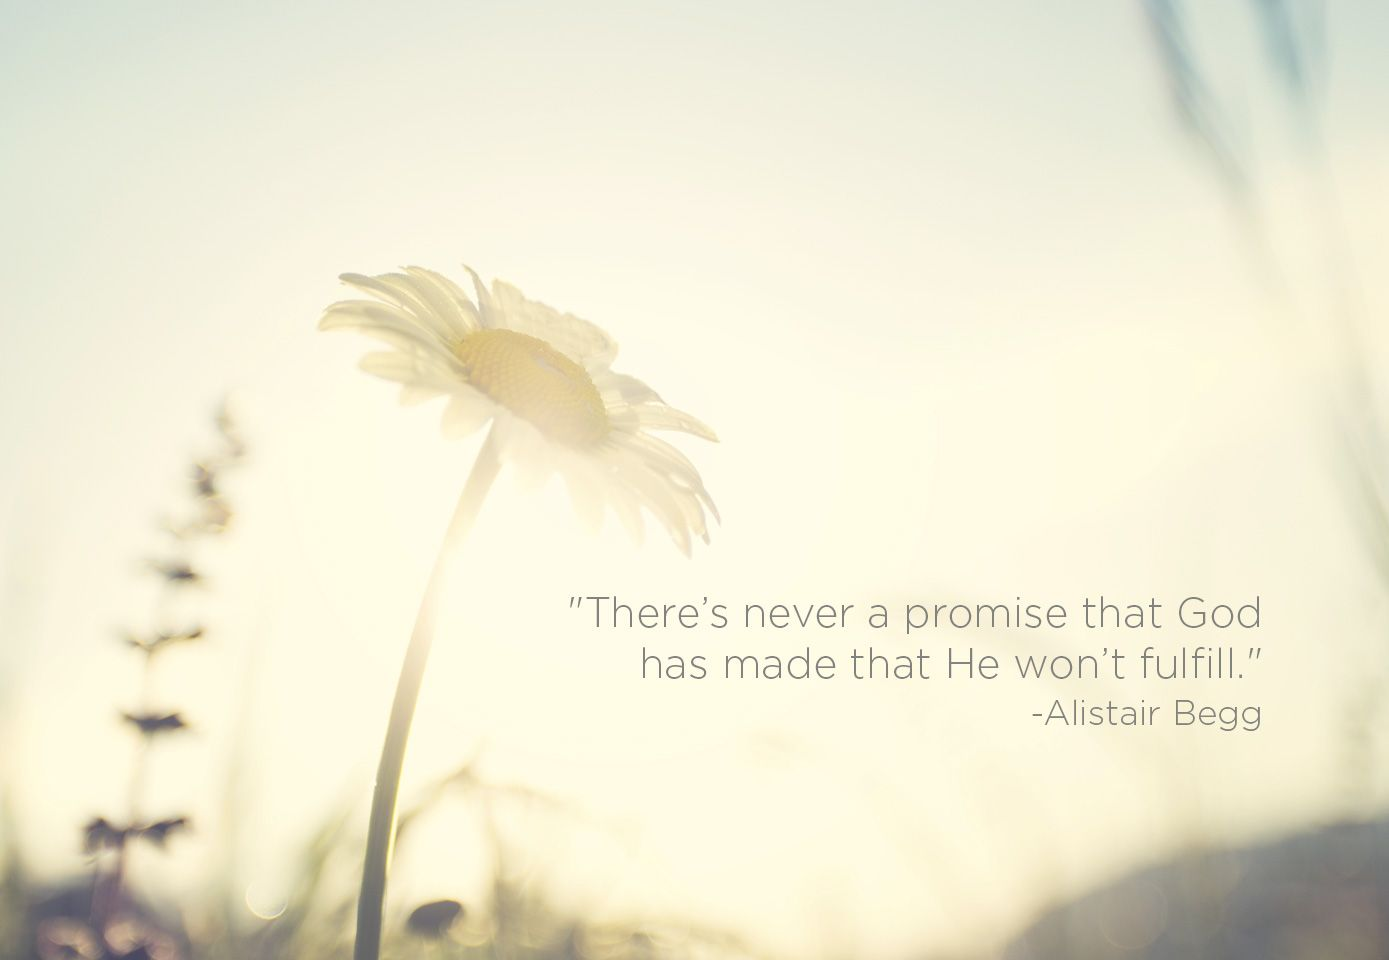 """There's never a promise that God has made that He won't fulfill."" -Alistair Begg"